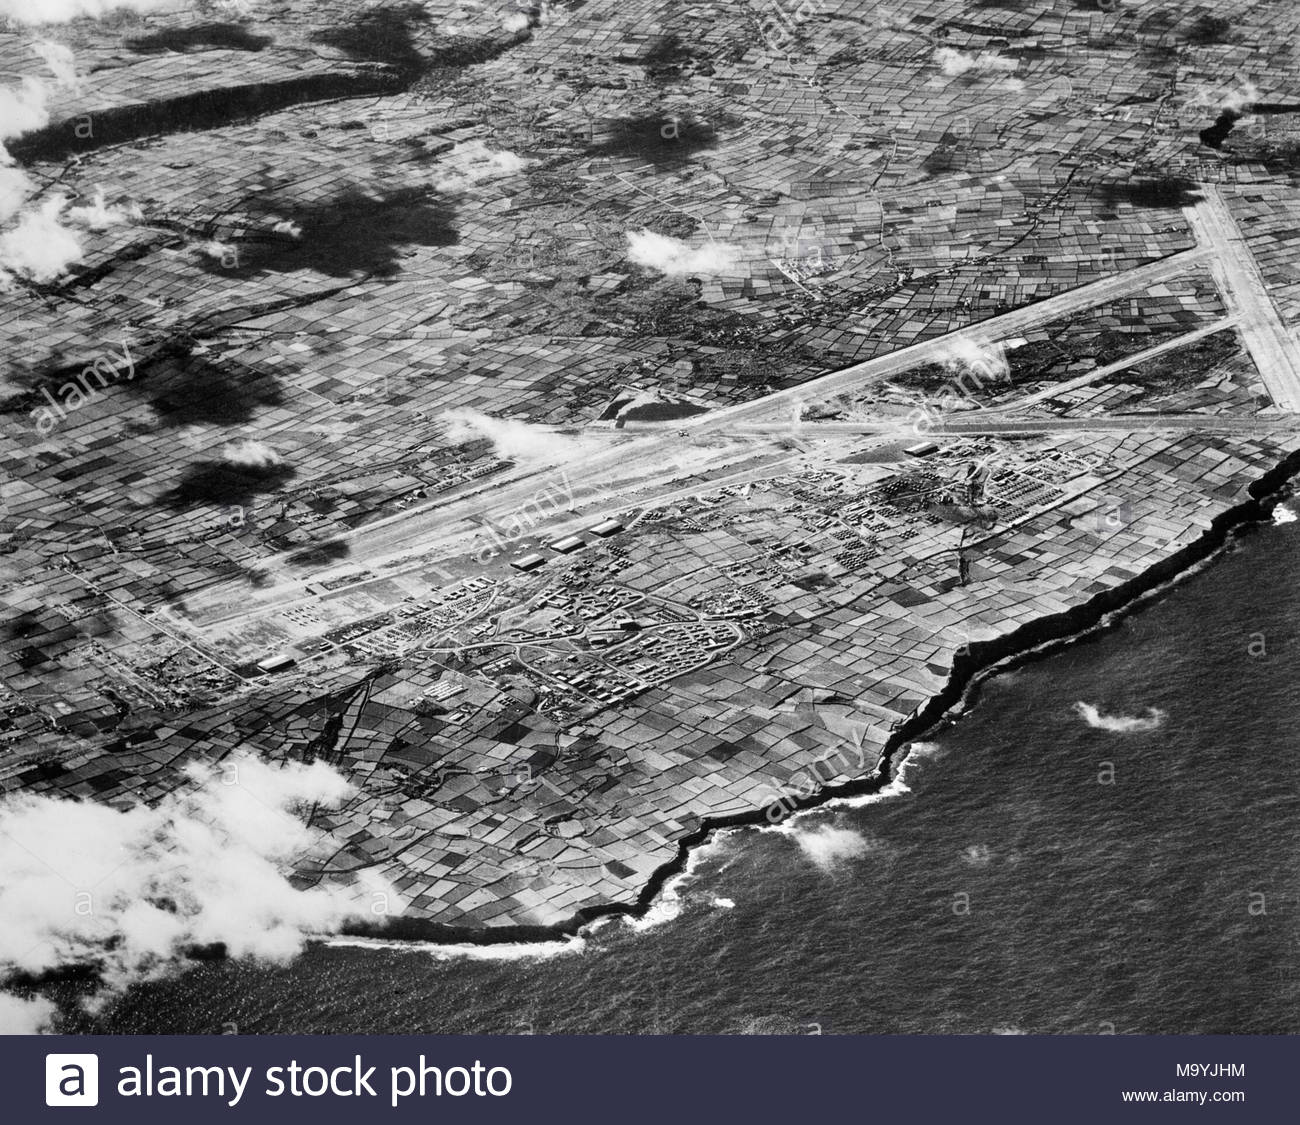 High Level Oblique Aerial Photograph Of The Airfield At Lagens On Island Terceira Azores From East